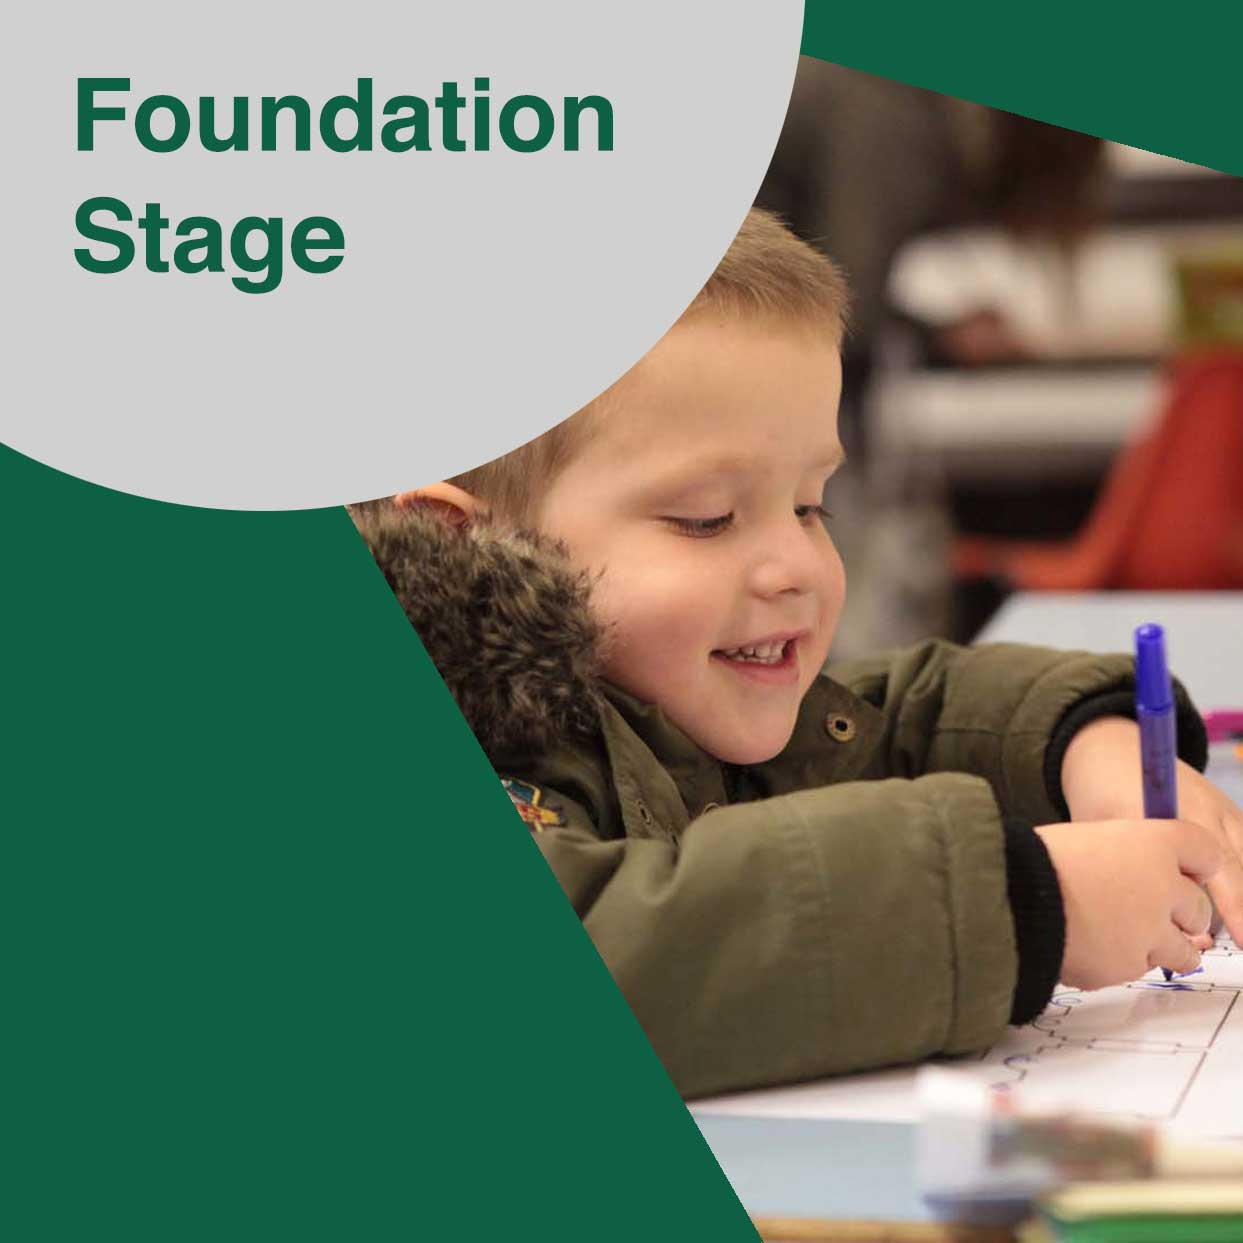 Foundation Stage learning, Barrow Hill Roundhouse museum offer school visits for all ages